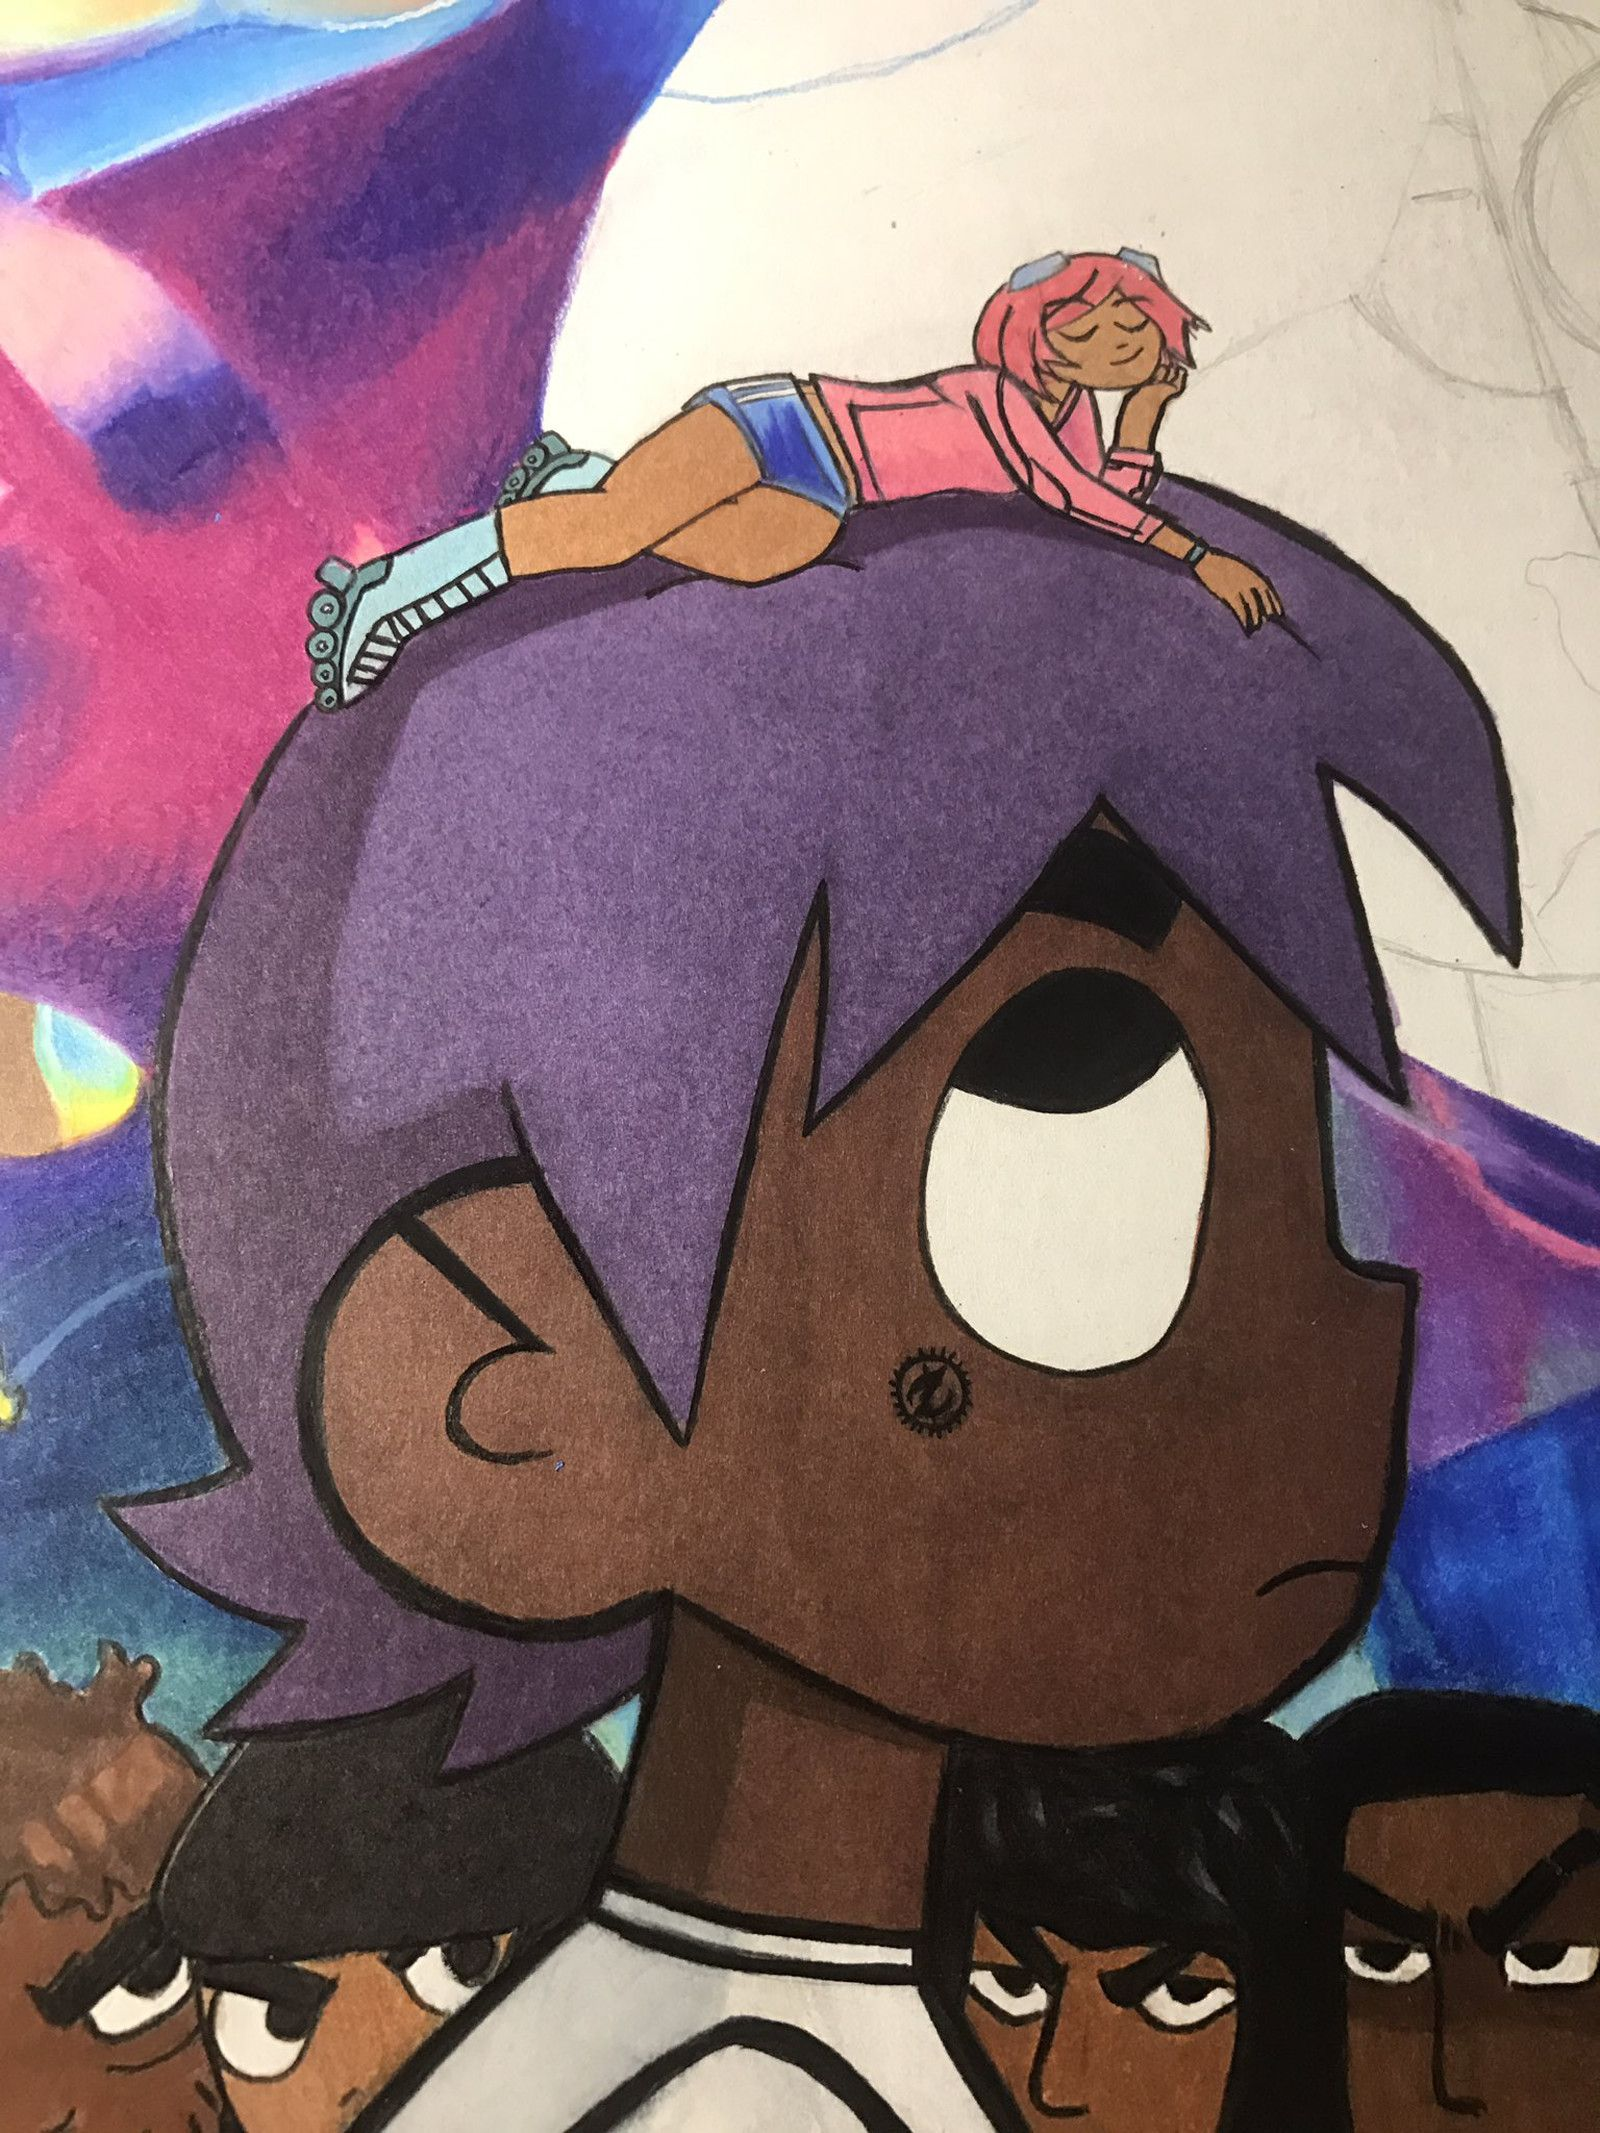 Cartoon Lil Uzi Vert Wallpapers Top Free Cartoon Lil Uzi Vert Backgrounds Wallpaperaccess We hope you enjoy our growing collection of hd images to use as a. cartoon lil uzi vert wallpapers top